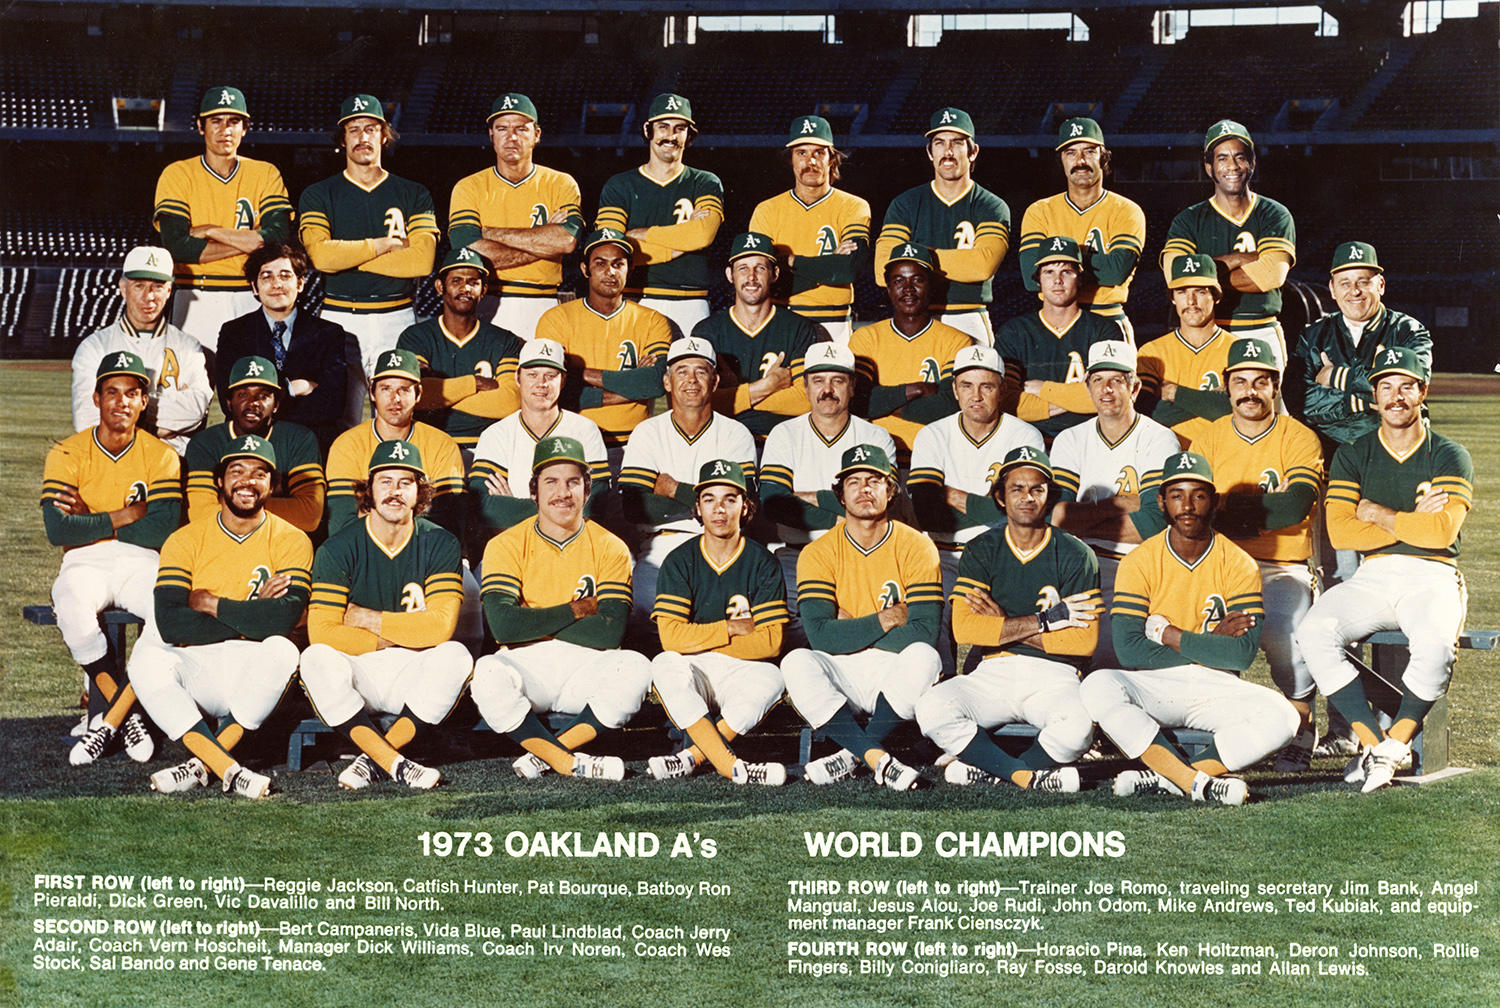 The Oakland Athletics, pictured here in 1973, won three straight World Series titles from 1972-1974. (National Baseball Hall of Fame)